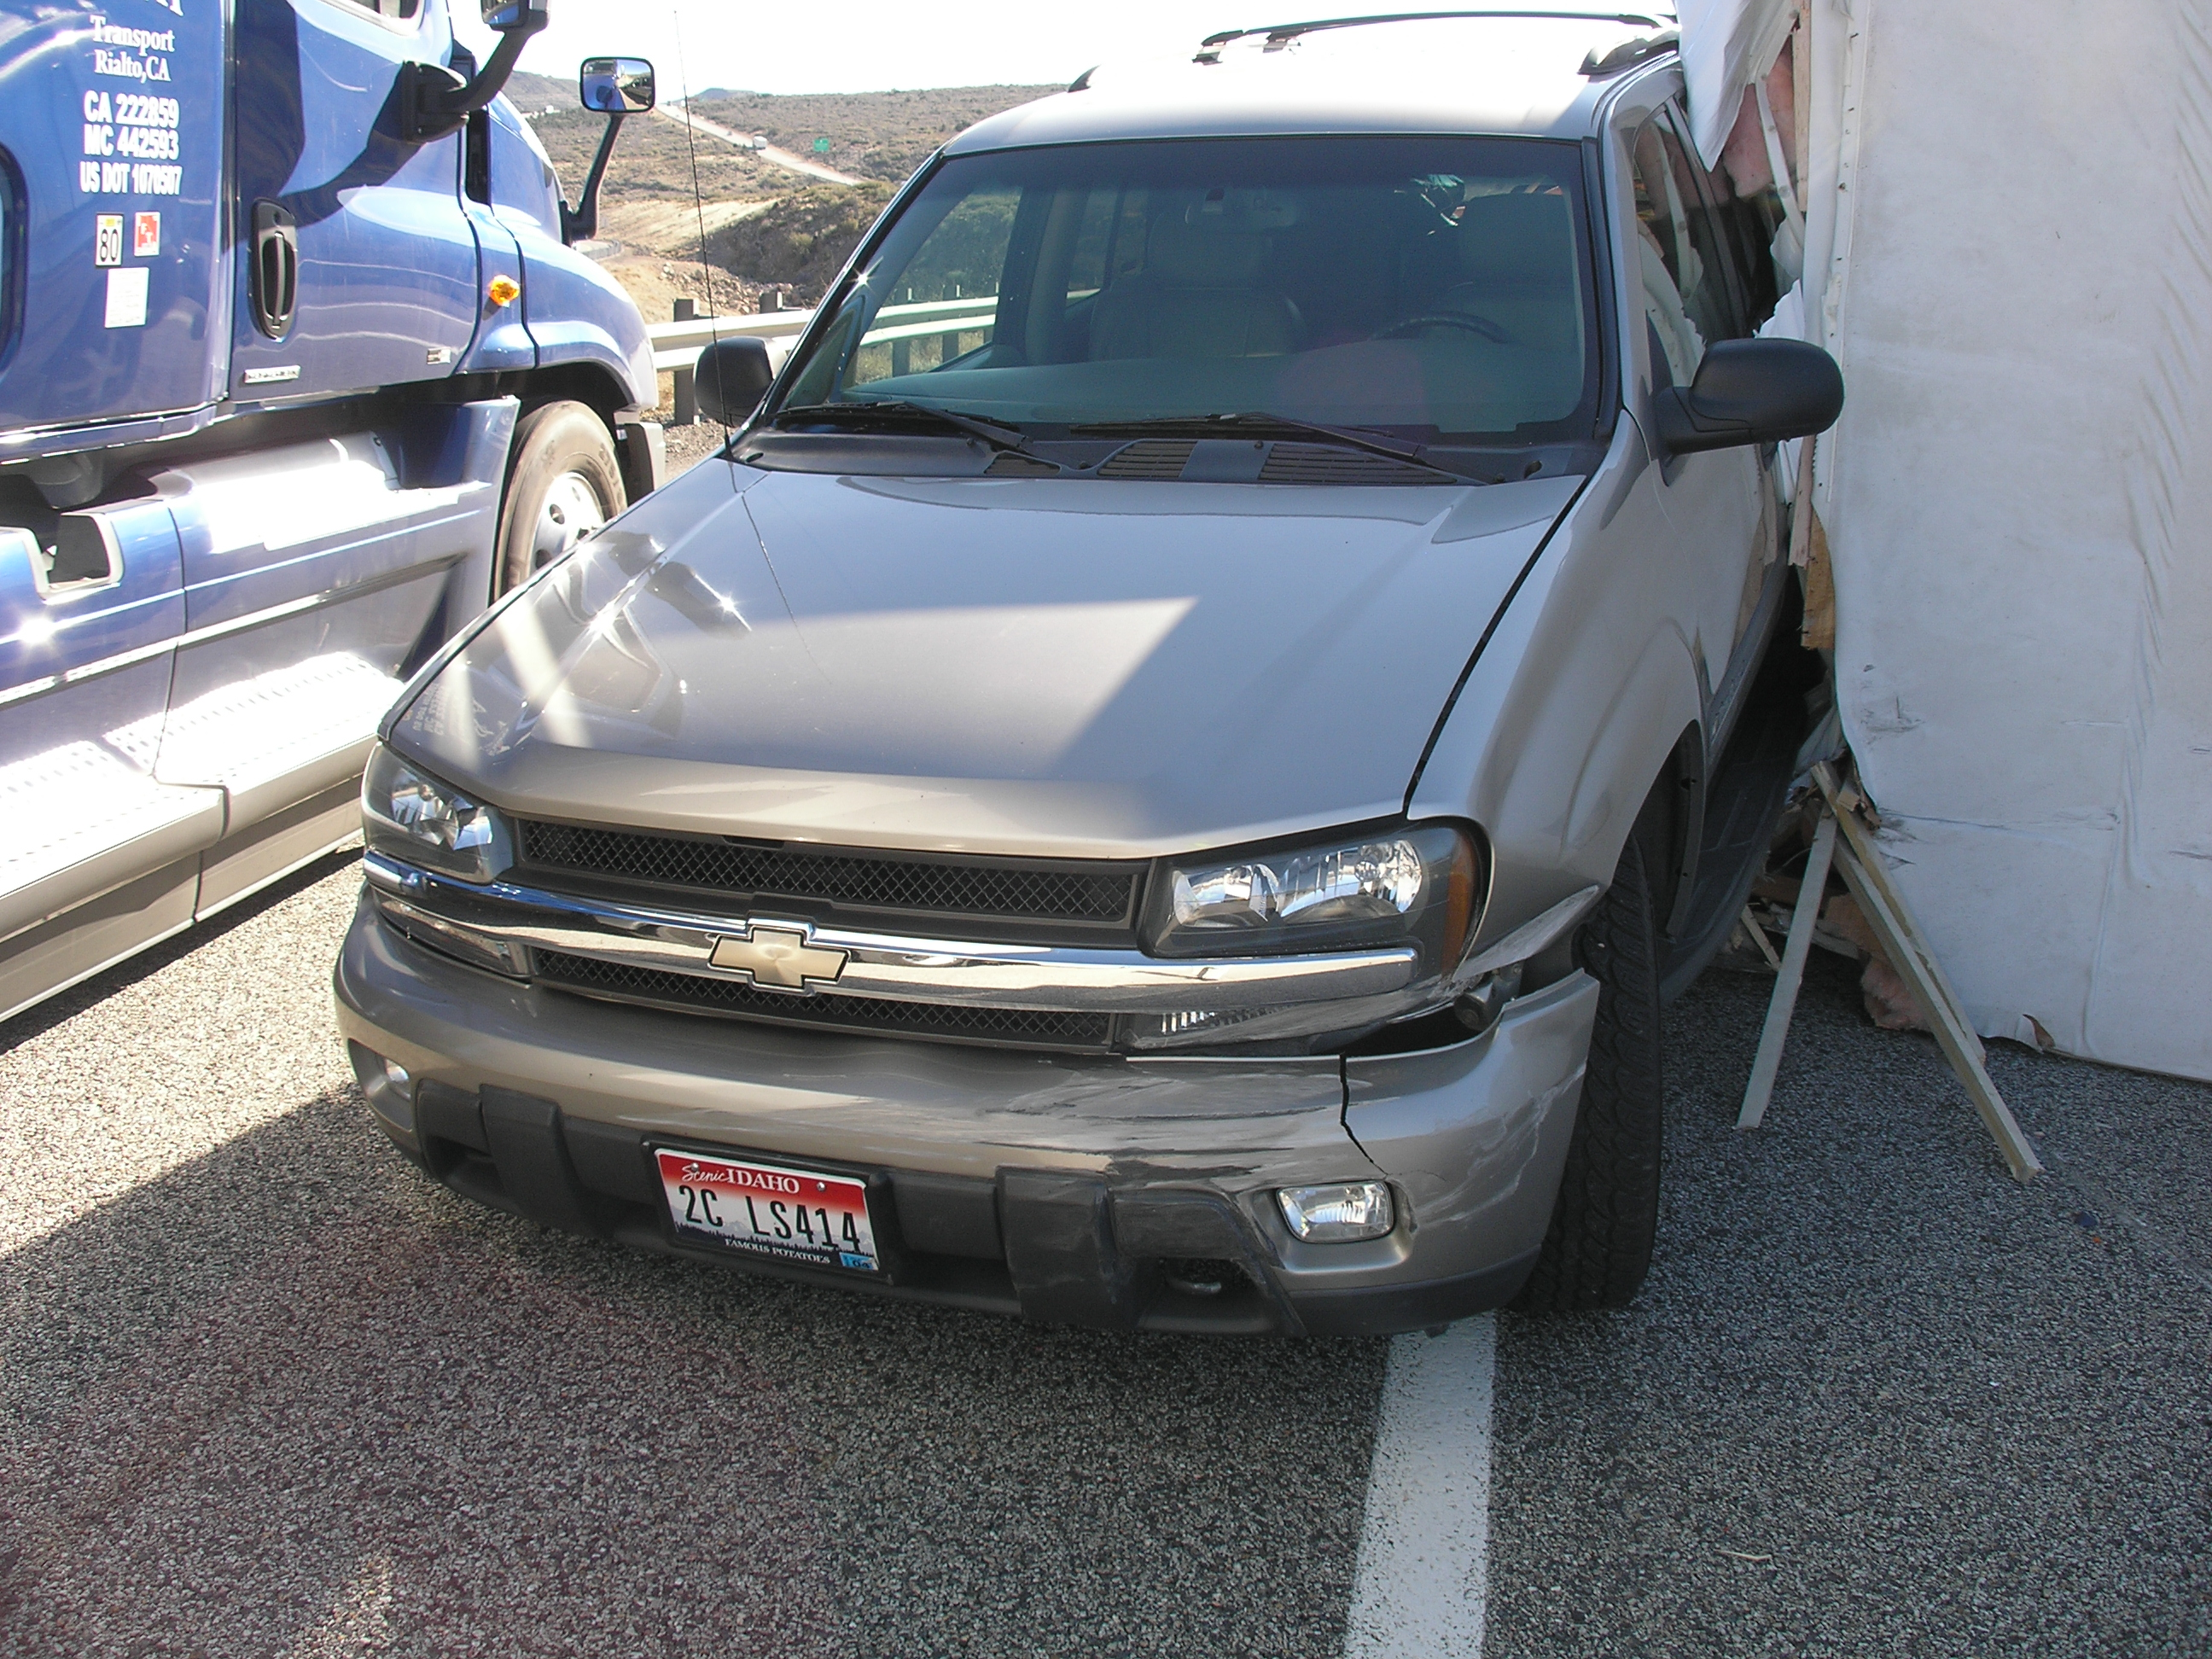 A Chevrolet Trailblazer sustained damage following collision on I-15, near milepost 29, Toquerville, Utah, Feb. 17, 2015 | Photo courtesy of the Utah Highway Patrol, St. George News